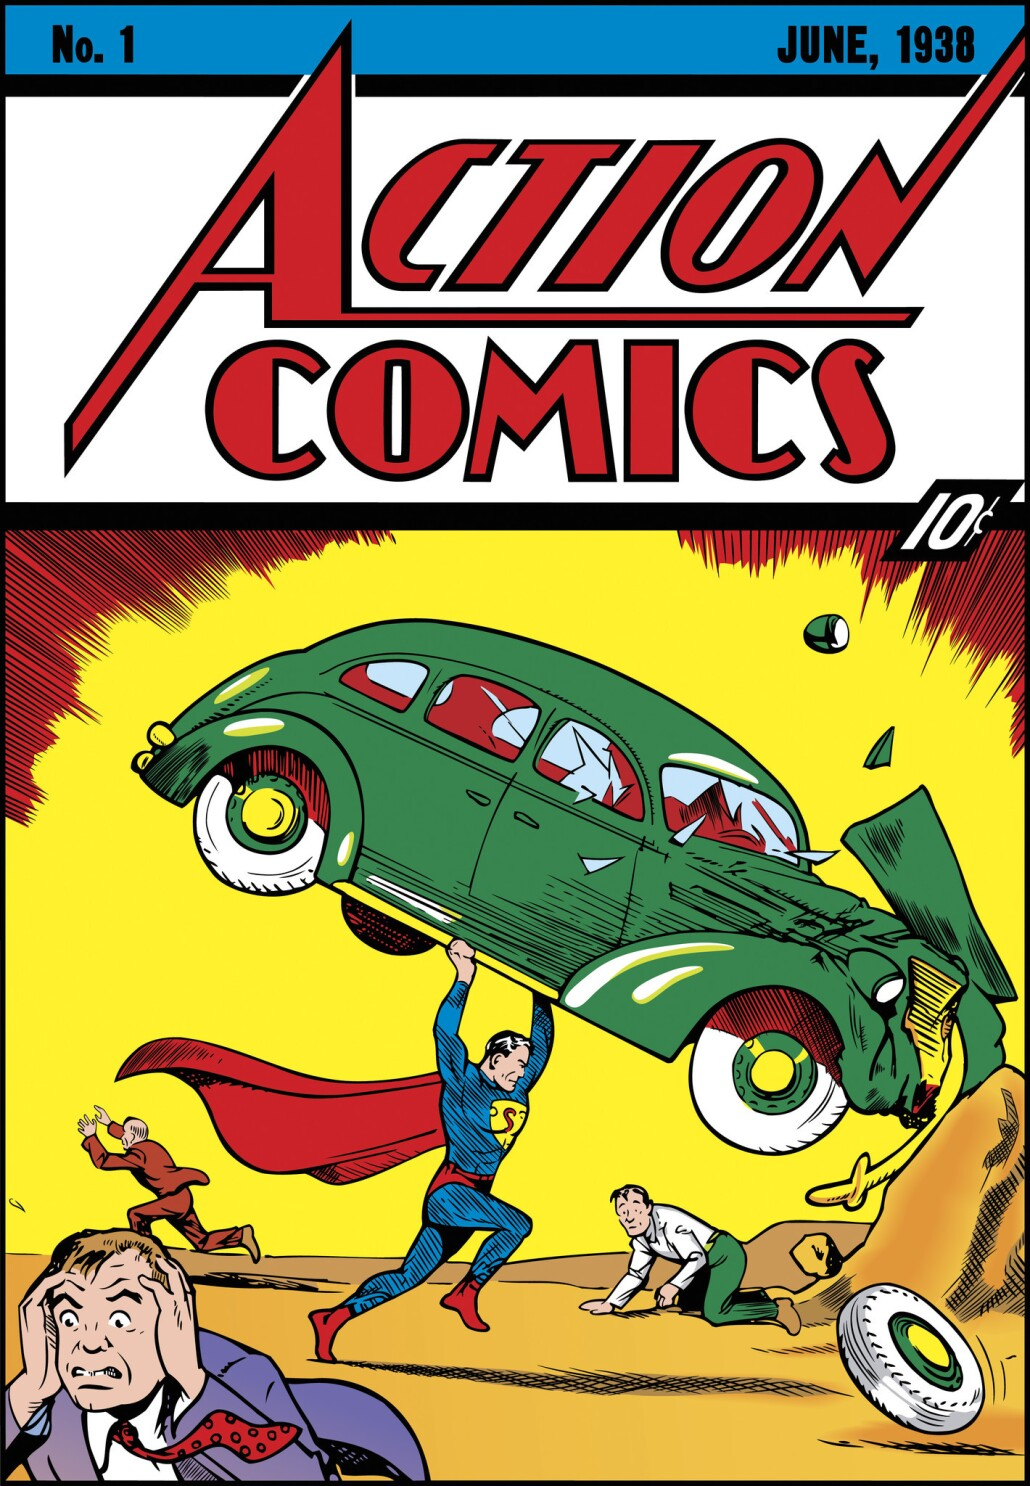 First Superman comic book sells for record-breaking $3.2 million - Los Angeles Times